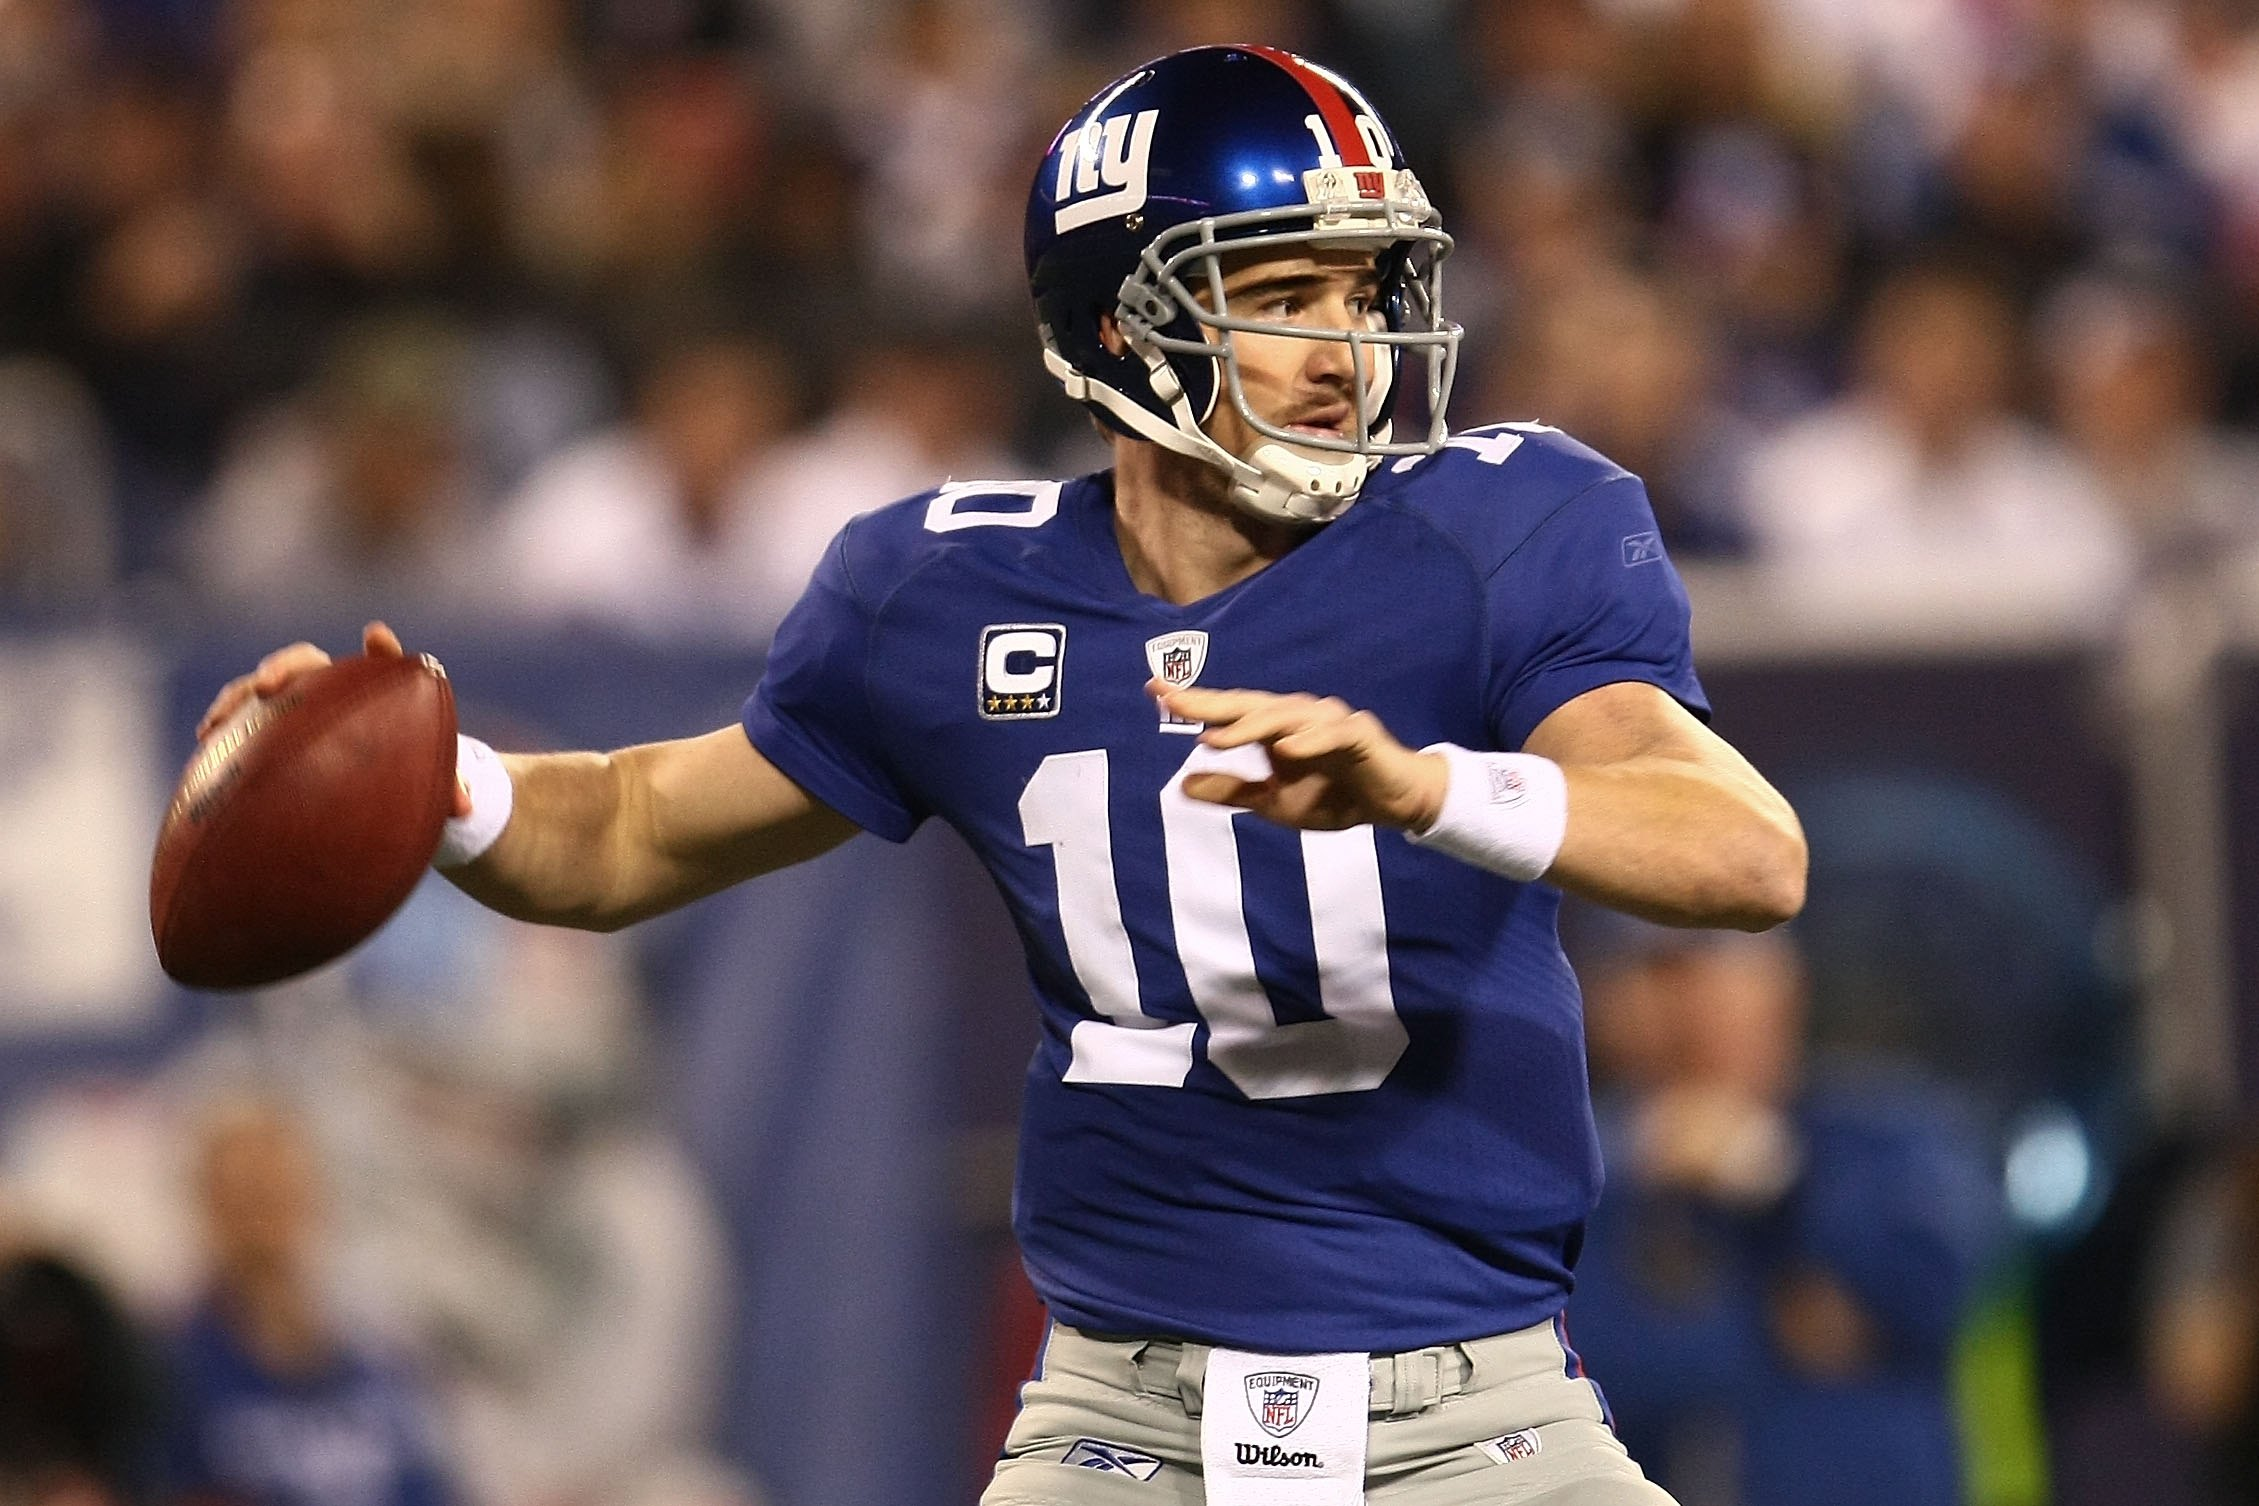 online store 2a71a f9535 Signed New York Giants Jersey from Quarterback Eli Manning